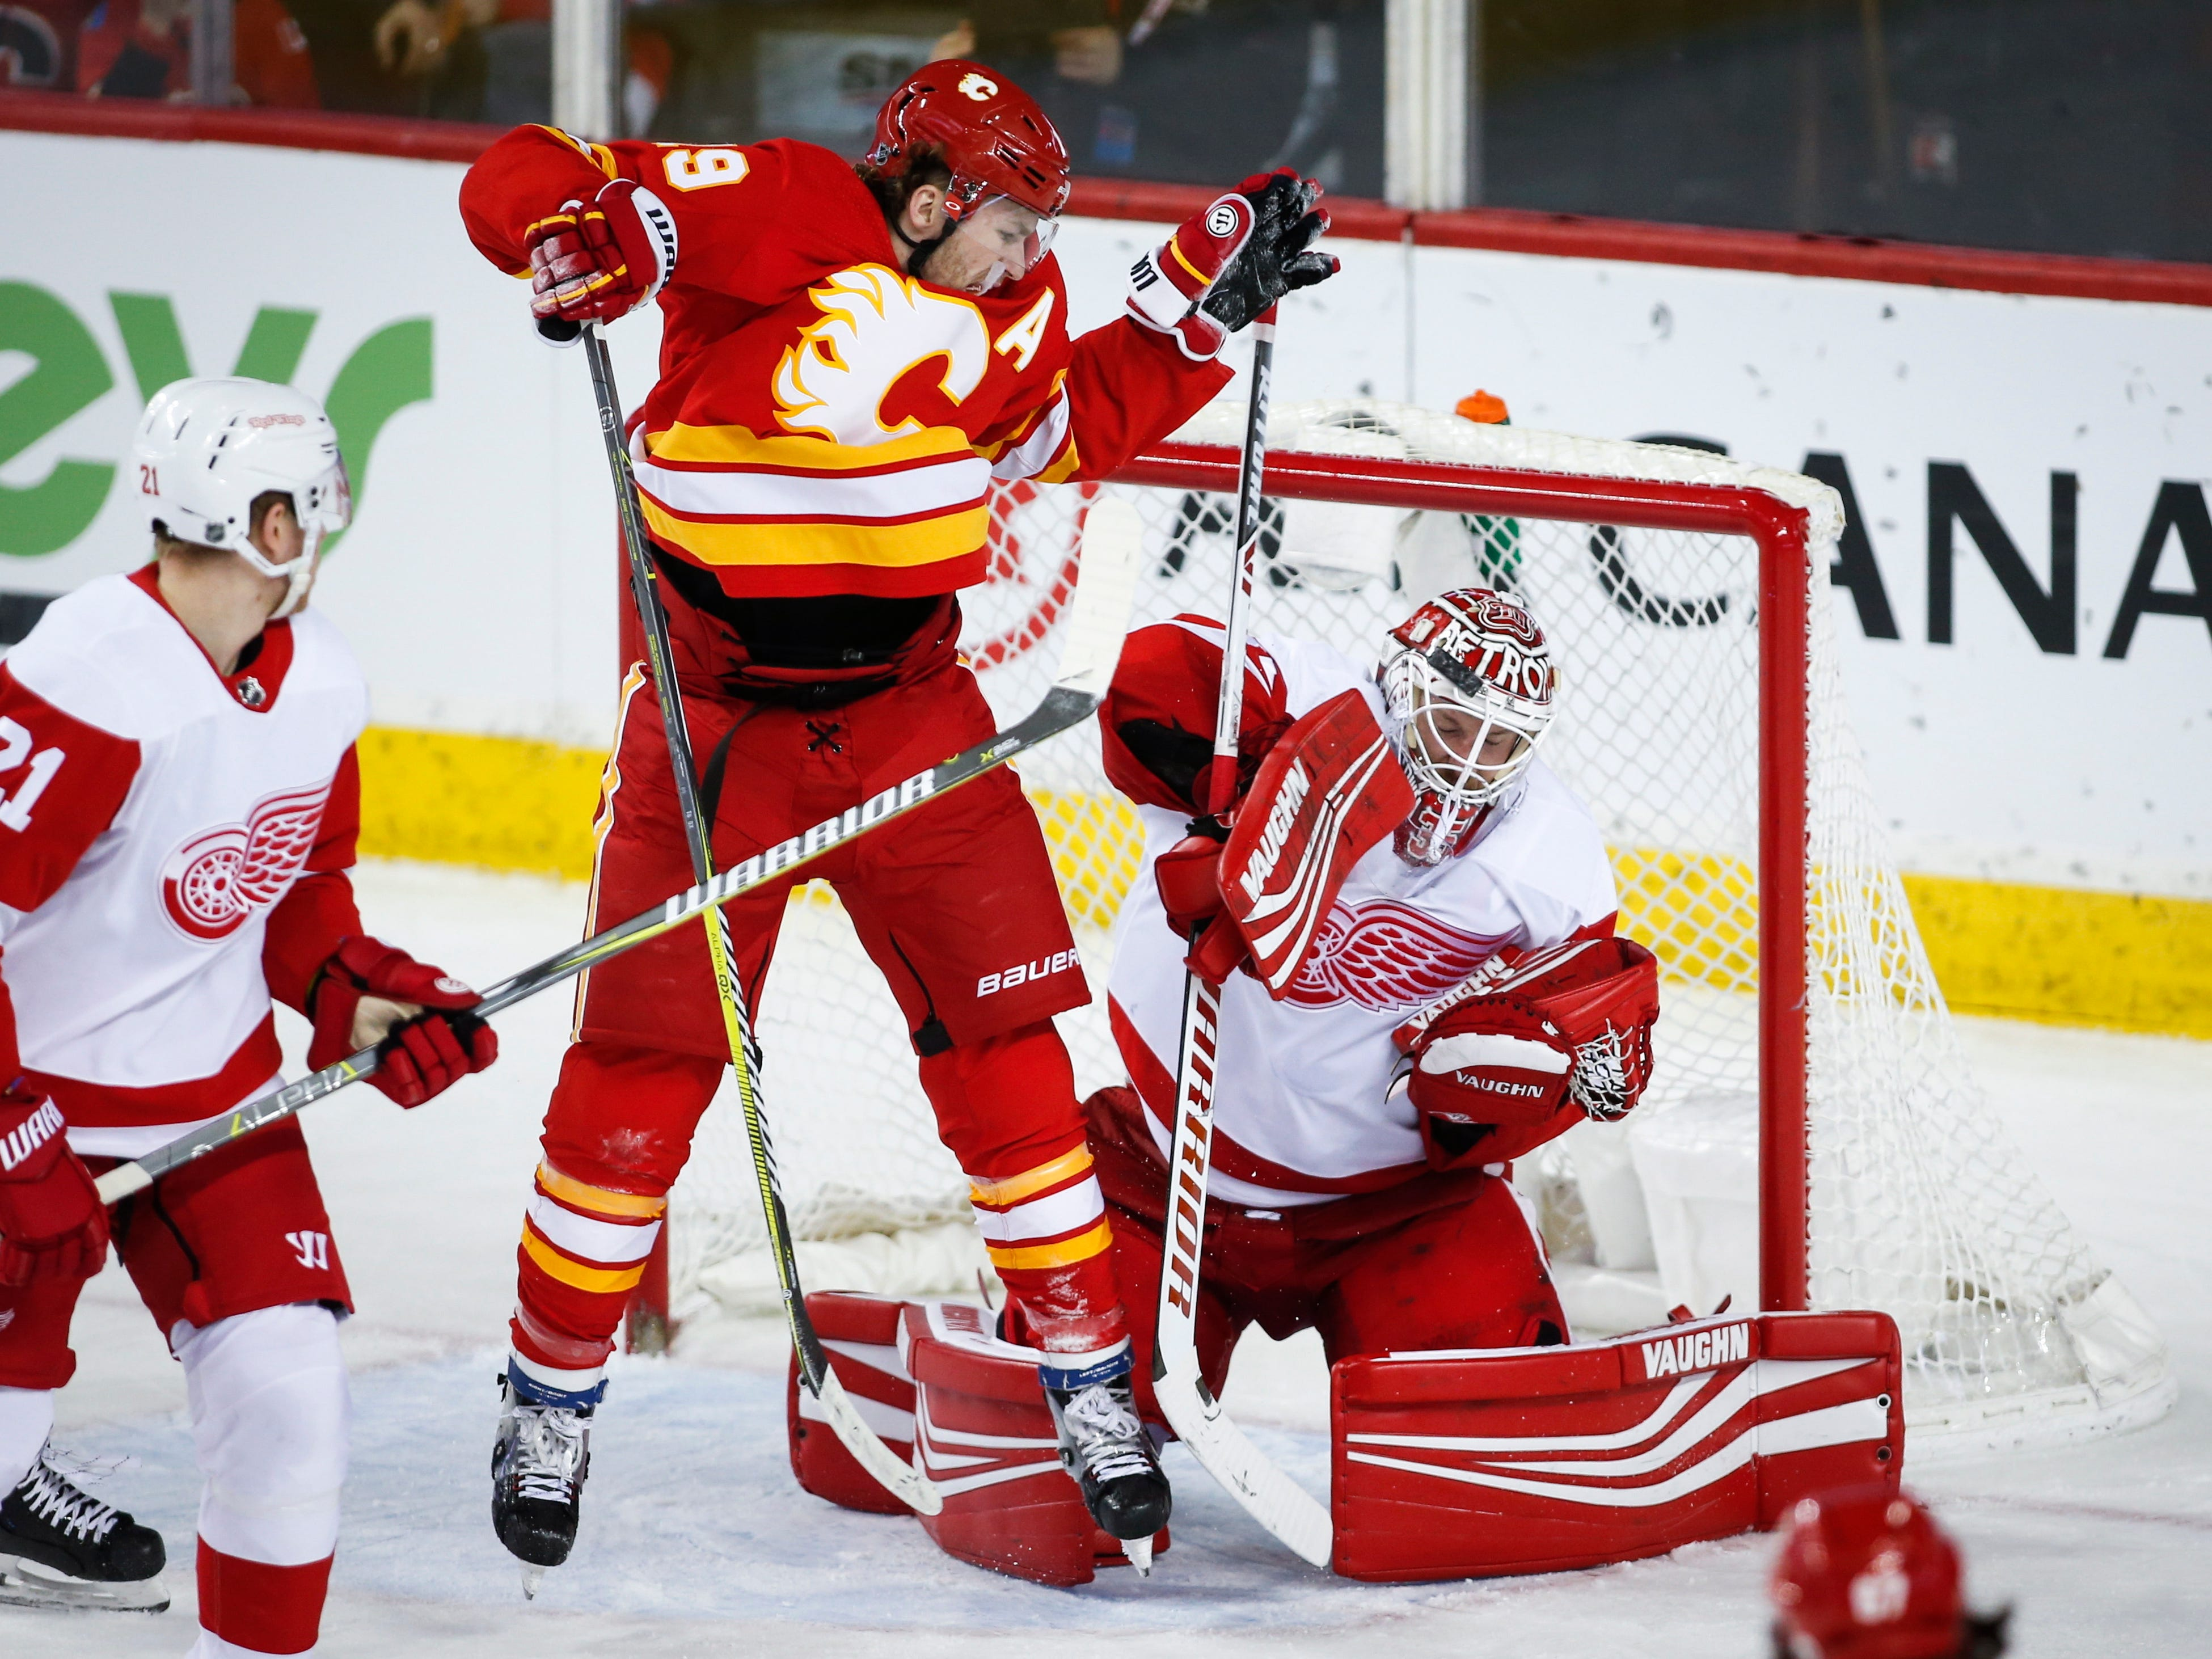 Red Wings goalie Jimmy Howard, right, has his shot deflect off his helmet as the Flames' Matthew Tkachuk jumps during the second period.